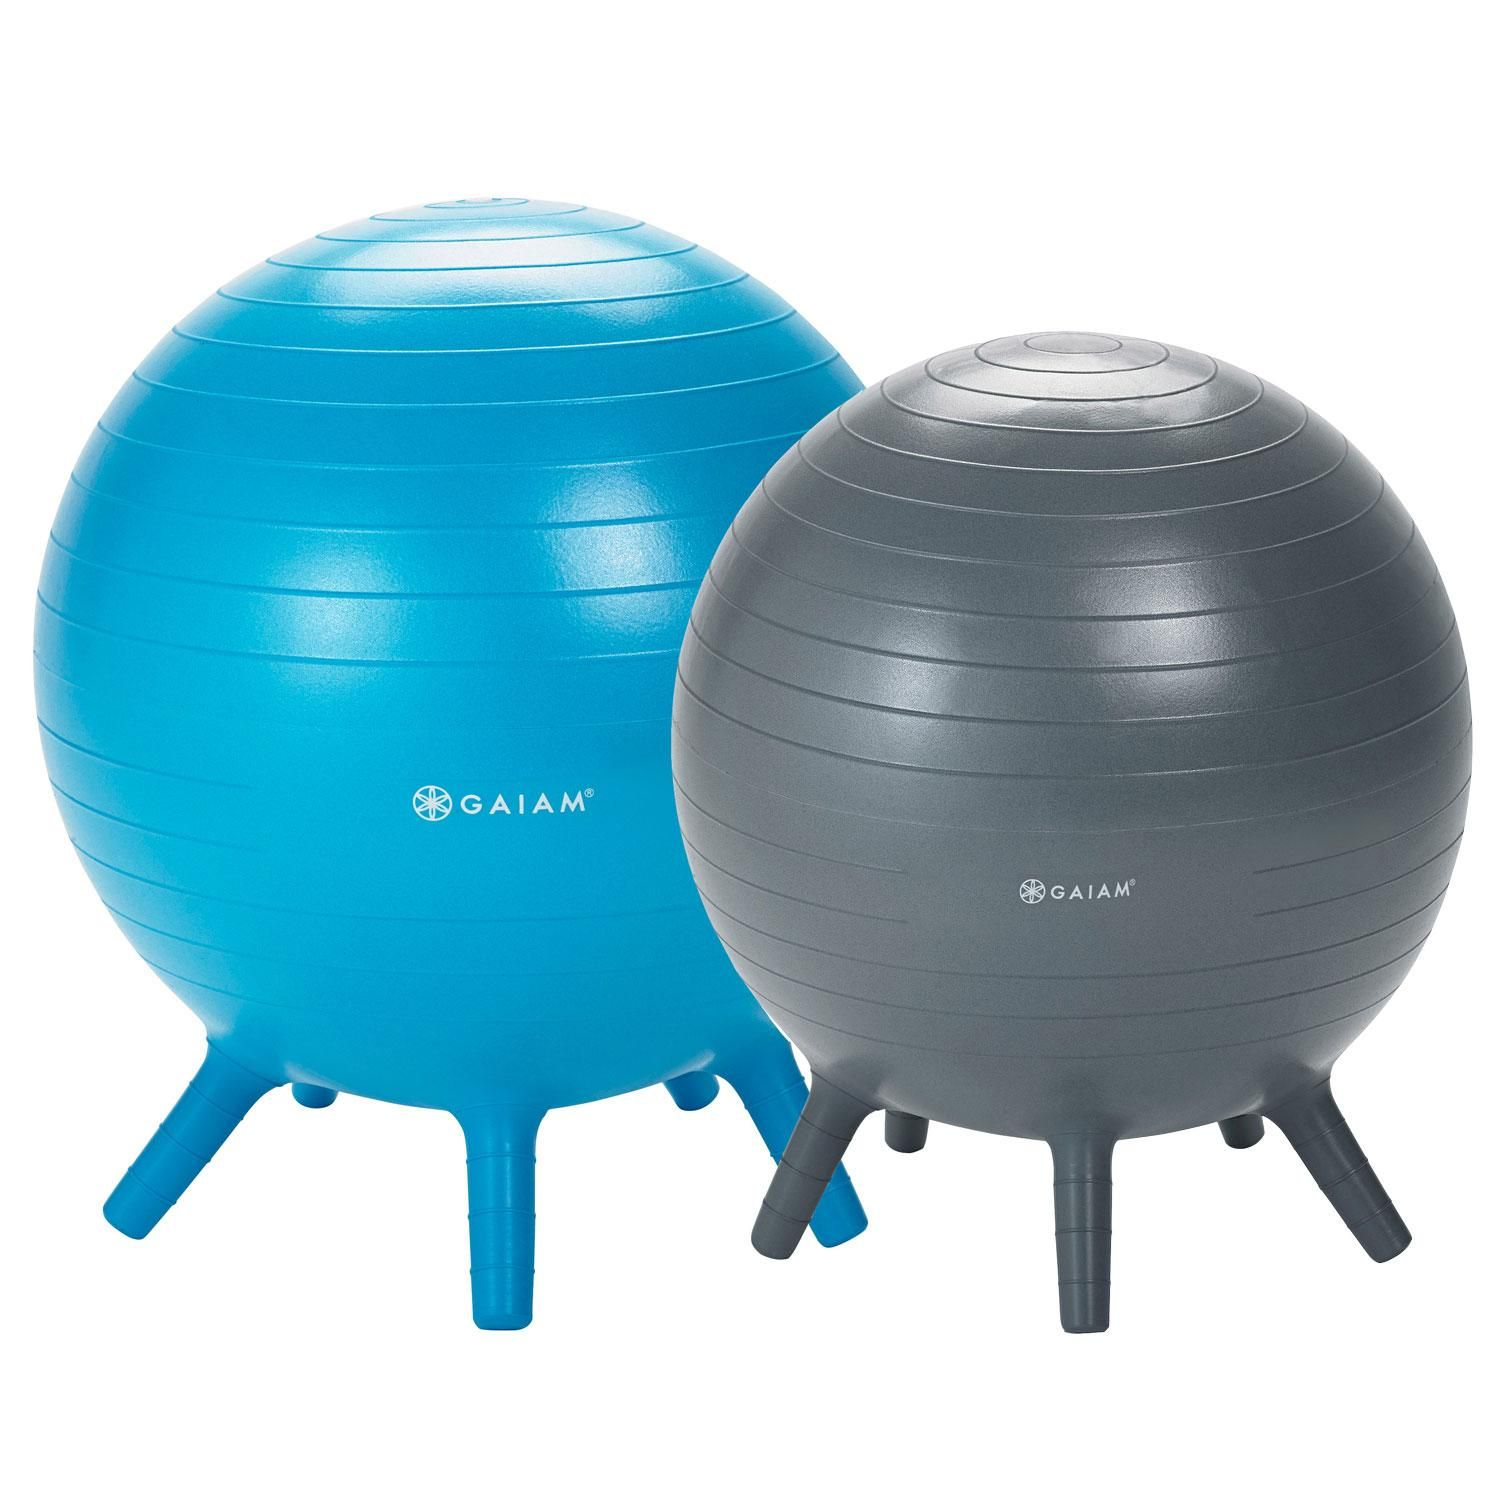 Built-in Stay-Put Soft Stability Legs Gaiam Kids Stay-N-Play Childrens Balance Ball Prints /& Sizes Flexible School Chair Active Classroom Desk Alternative Seating